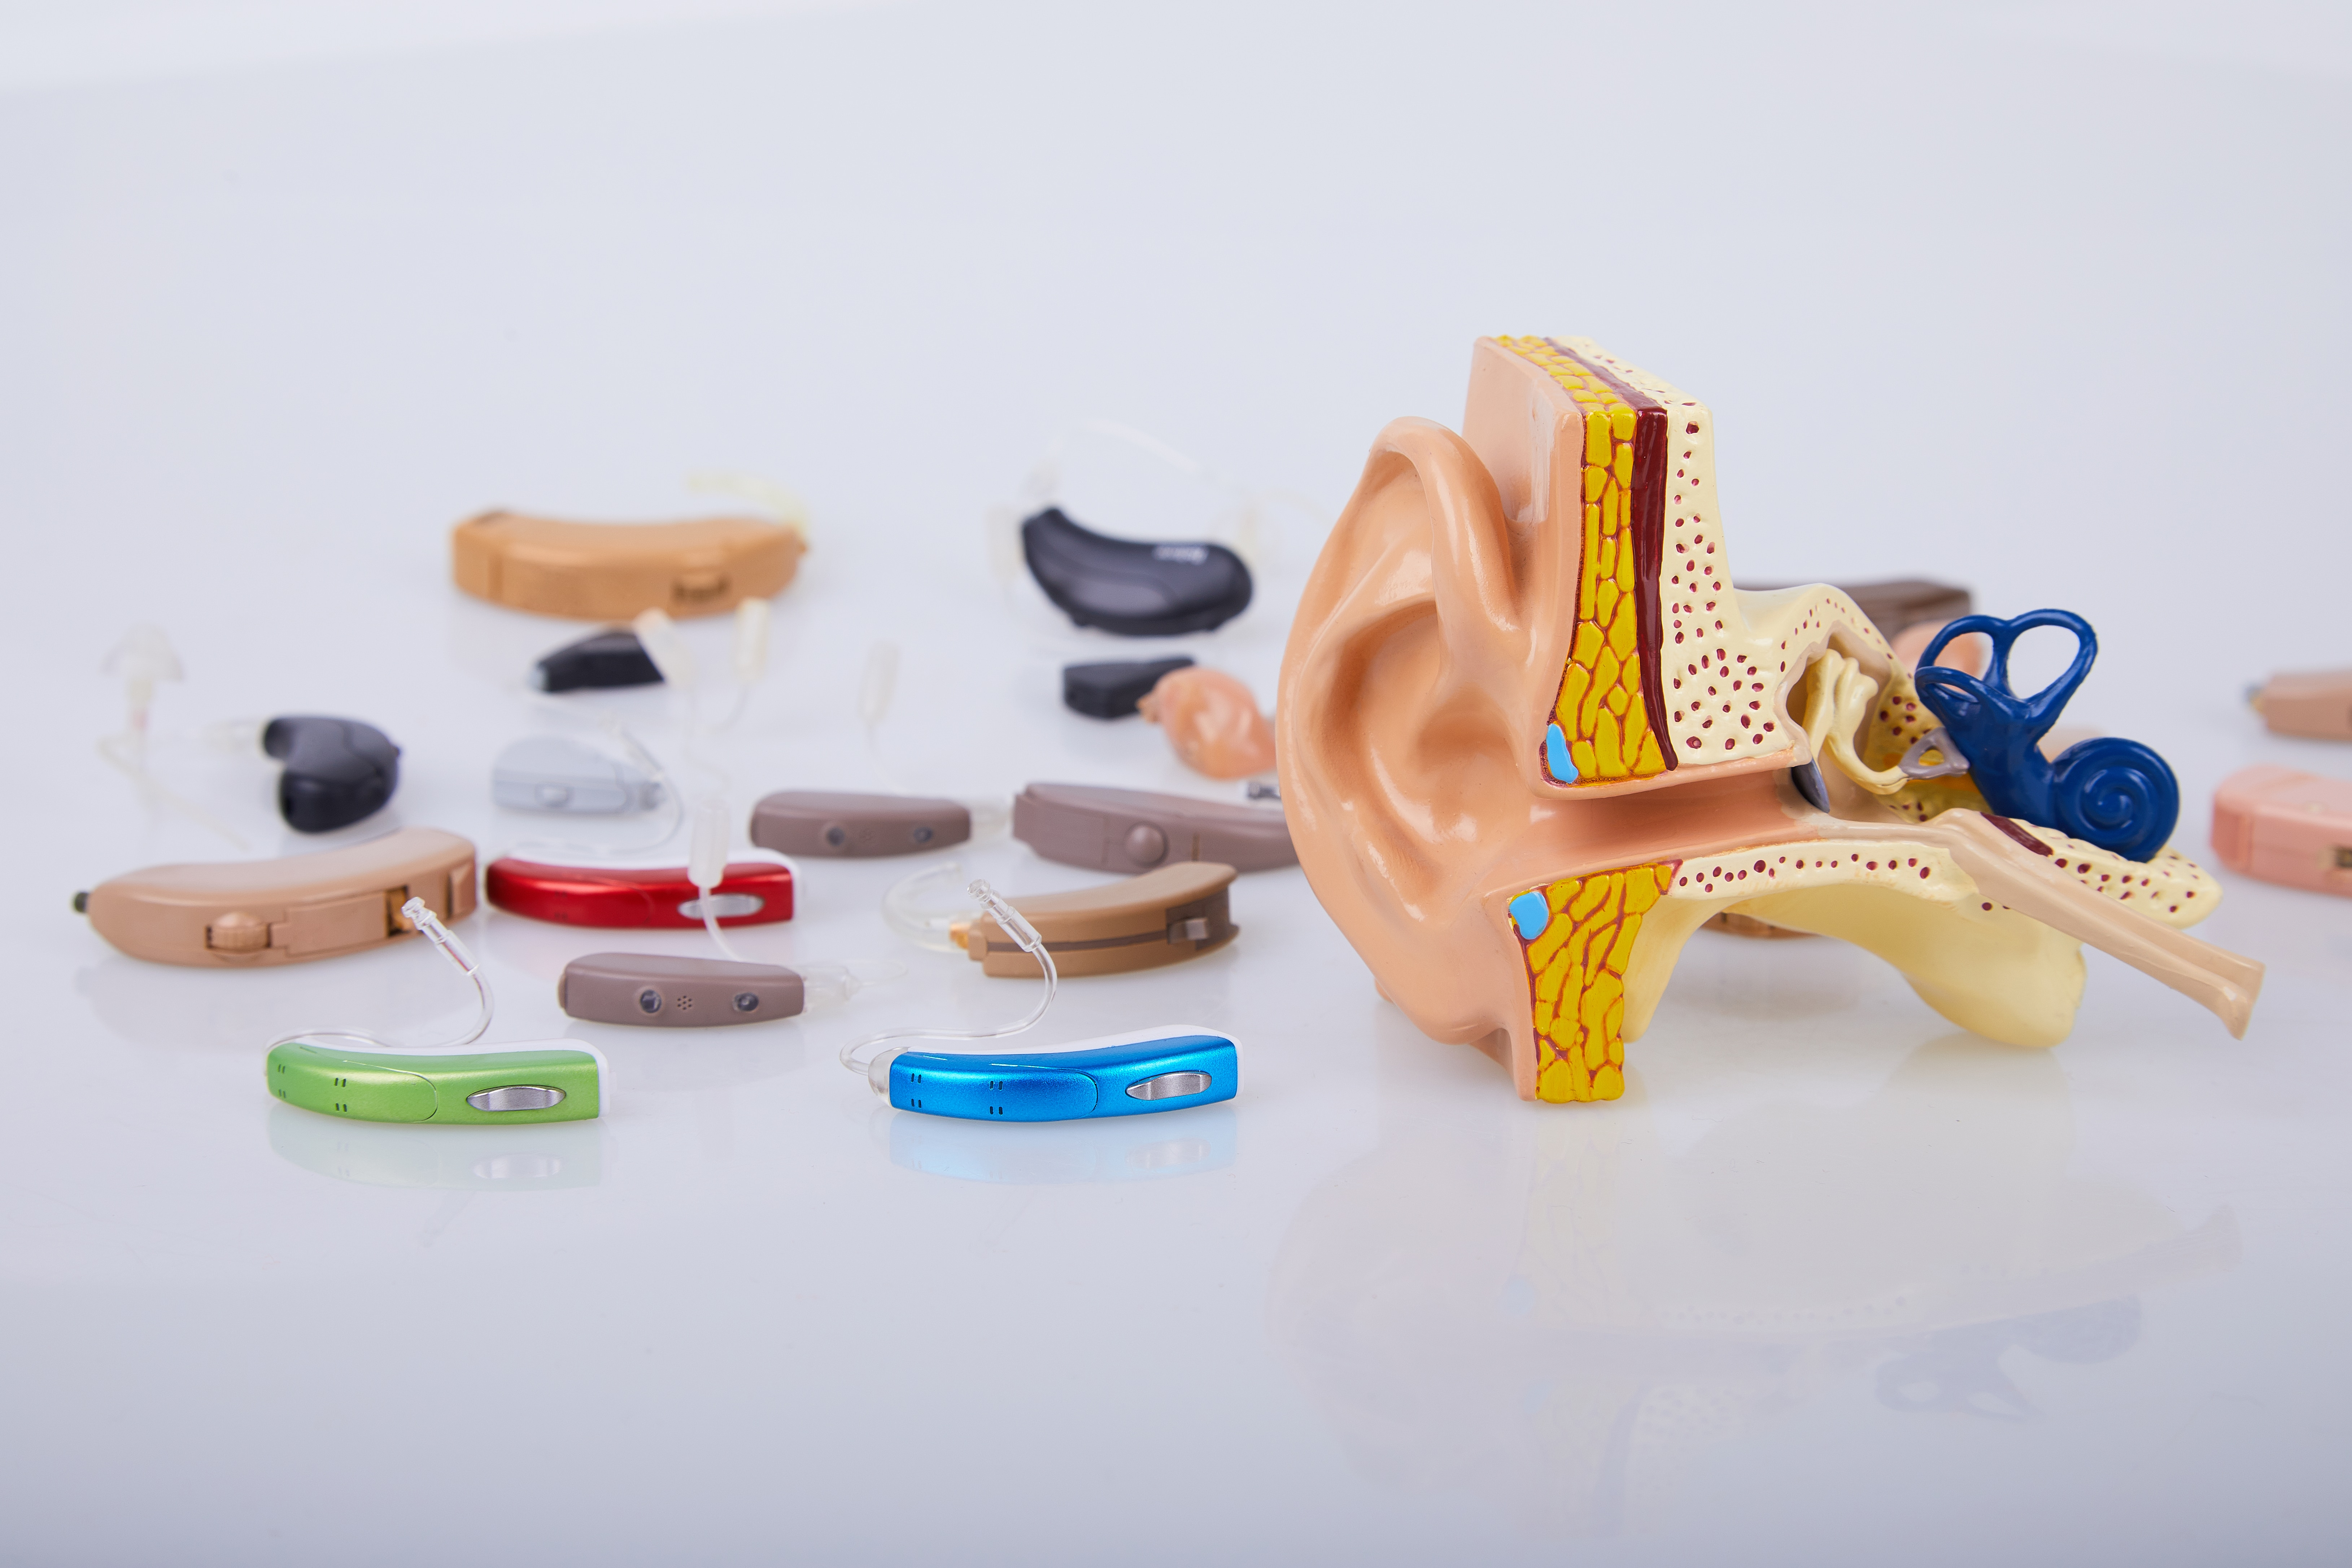 A collection of hearing aids.